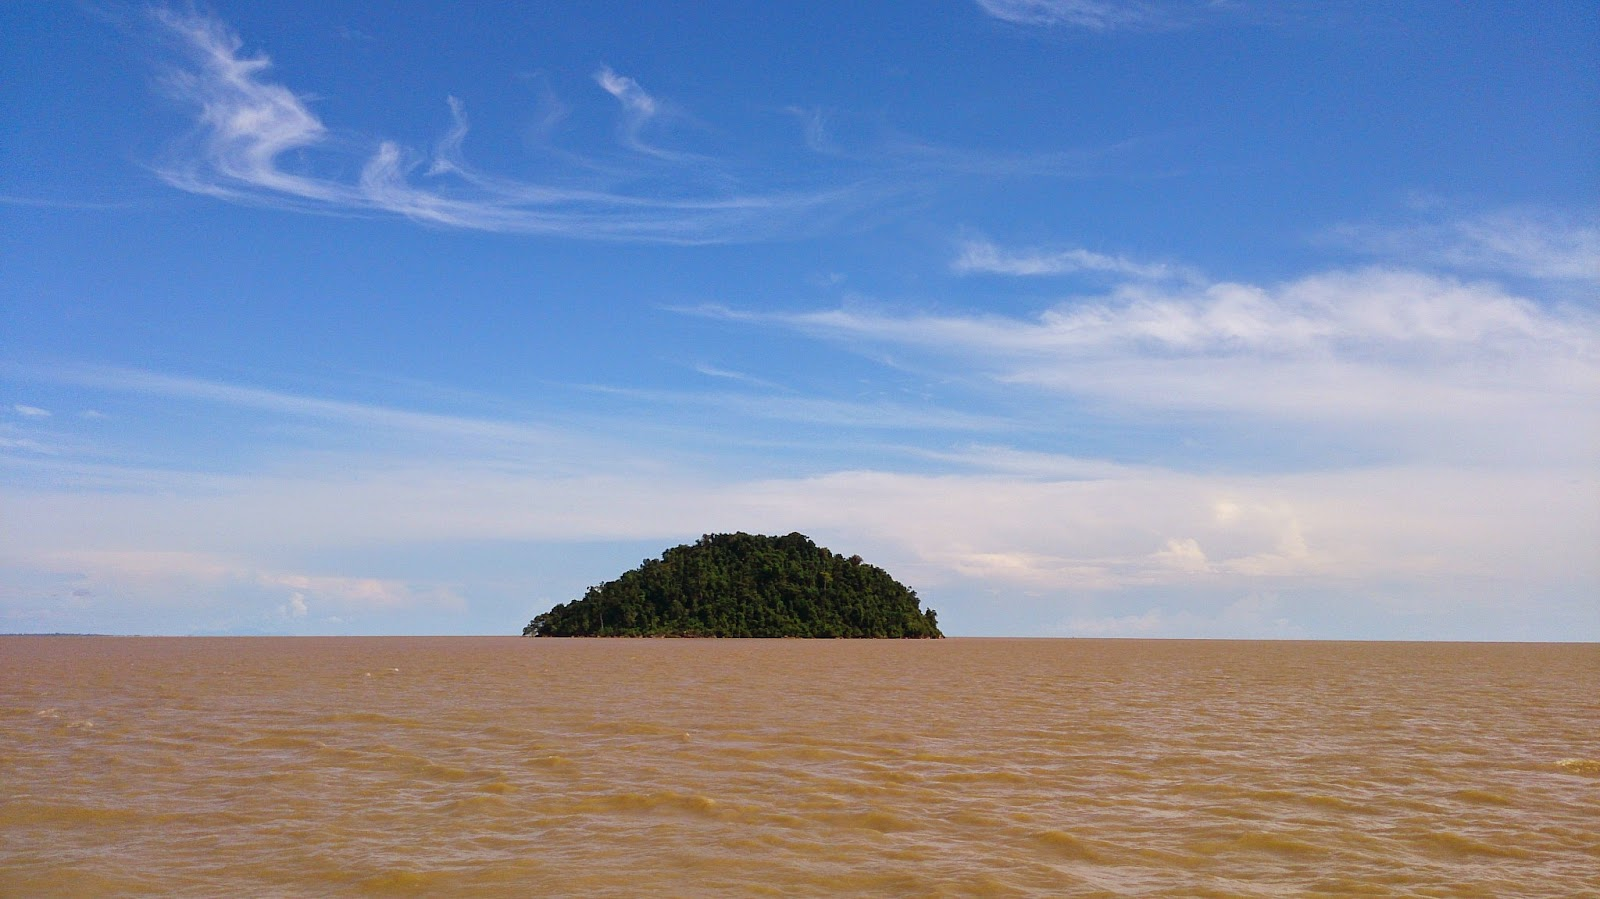 An island in the middle of Batang Lupar river mouth. Pix : Nelson's Adventure